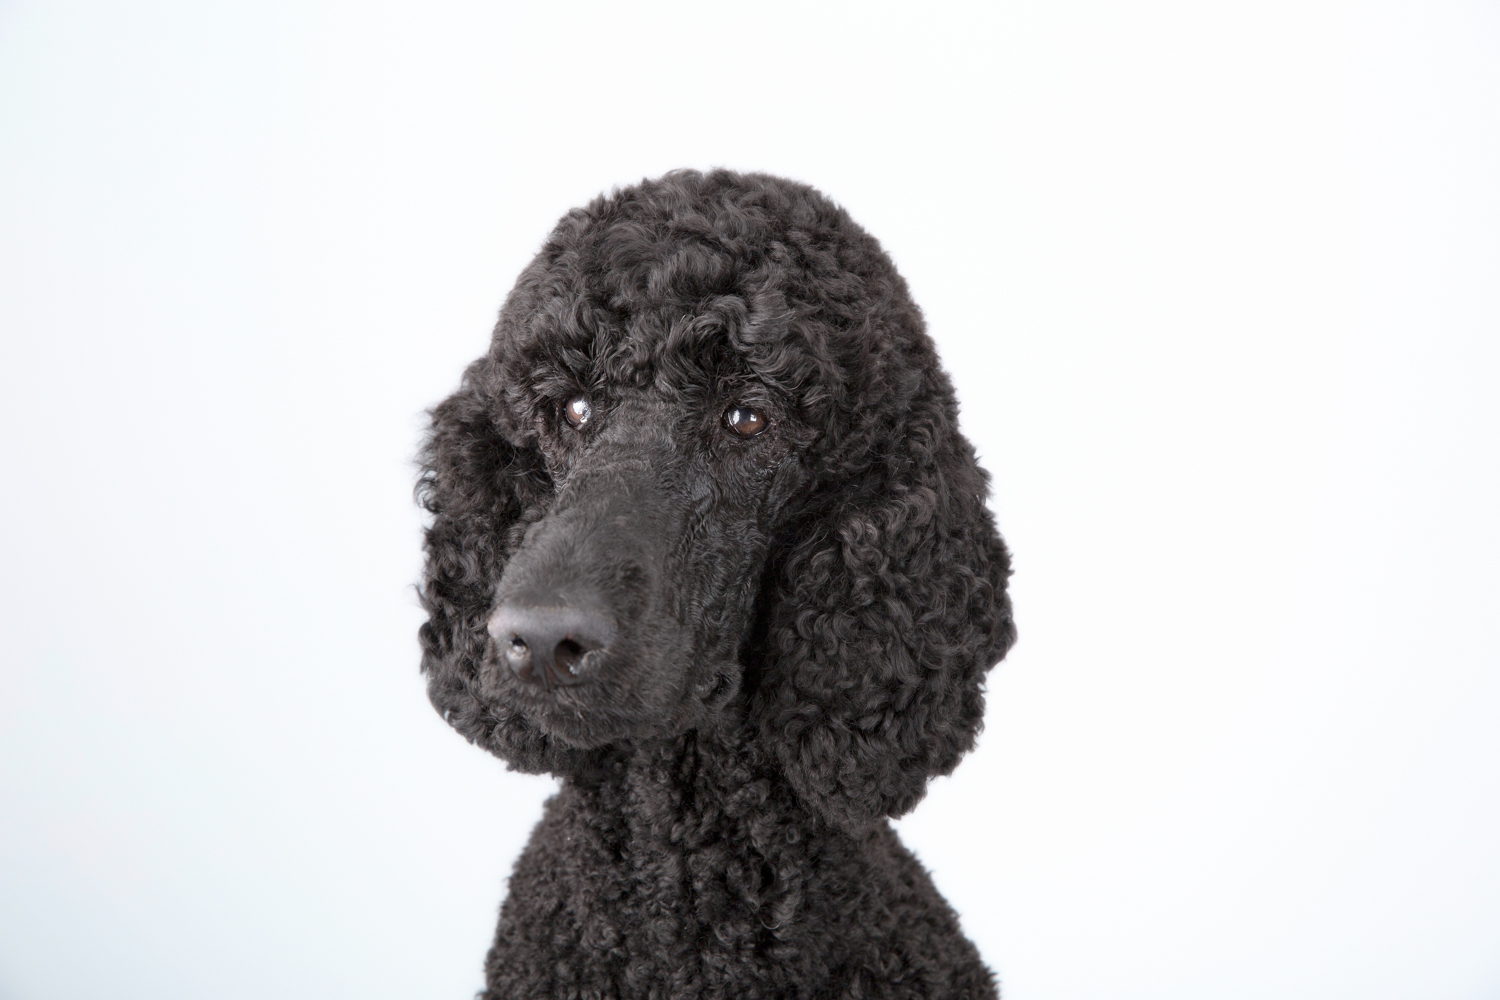 Black Standard Poodle posing for his photography portrait session